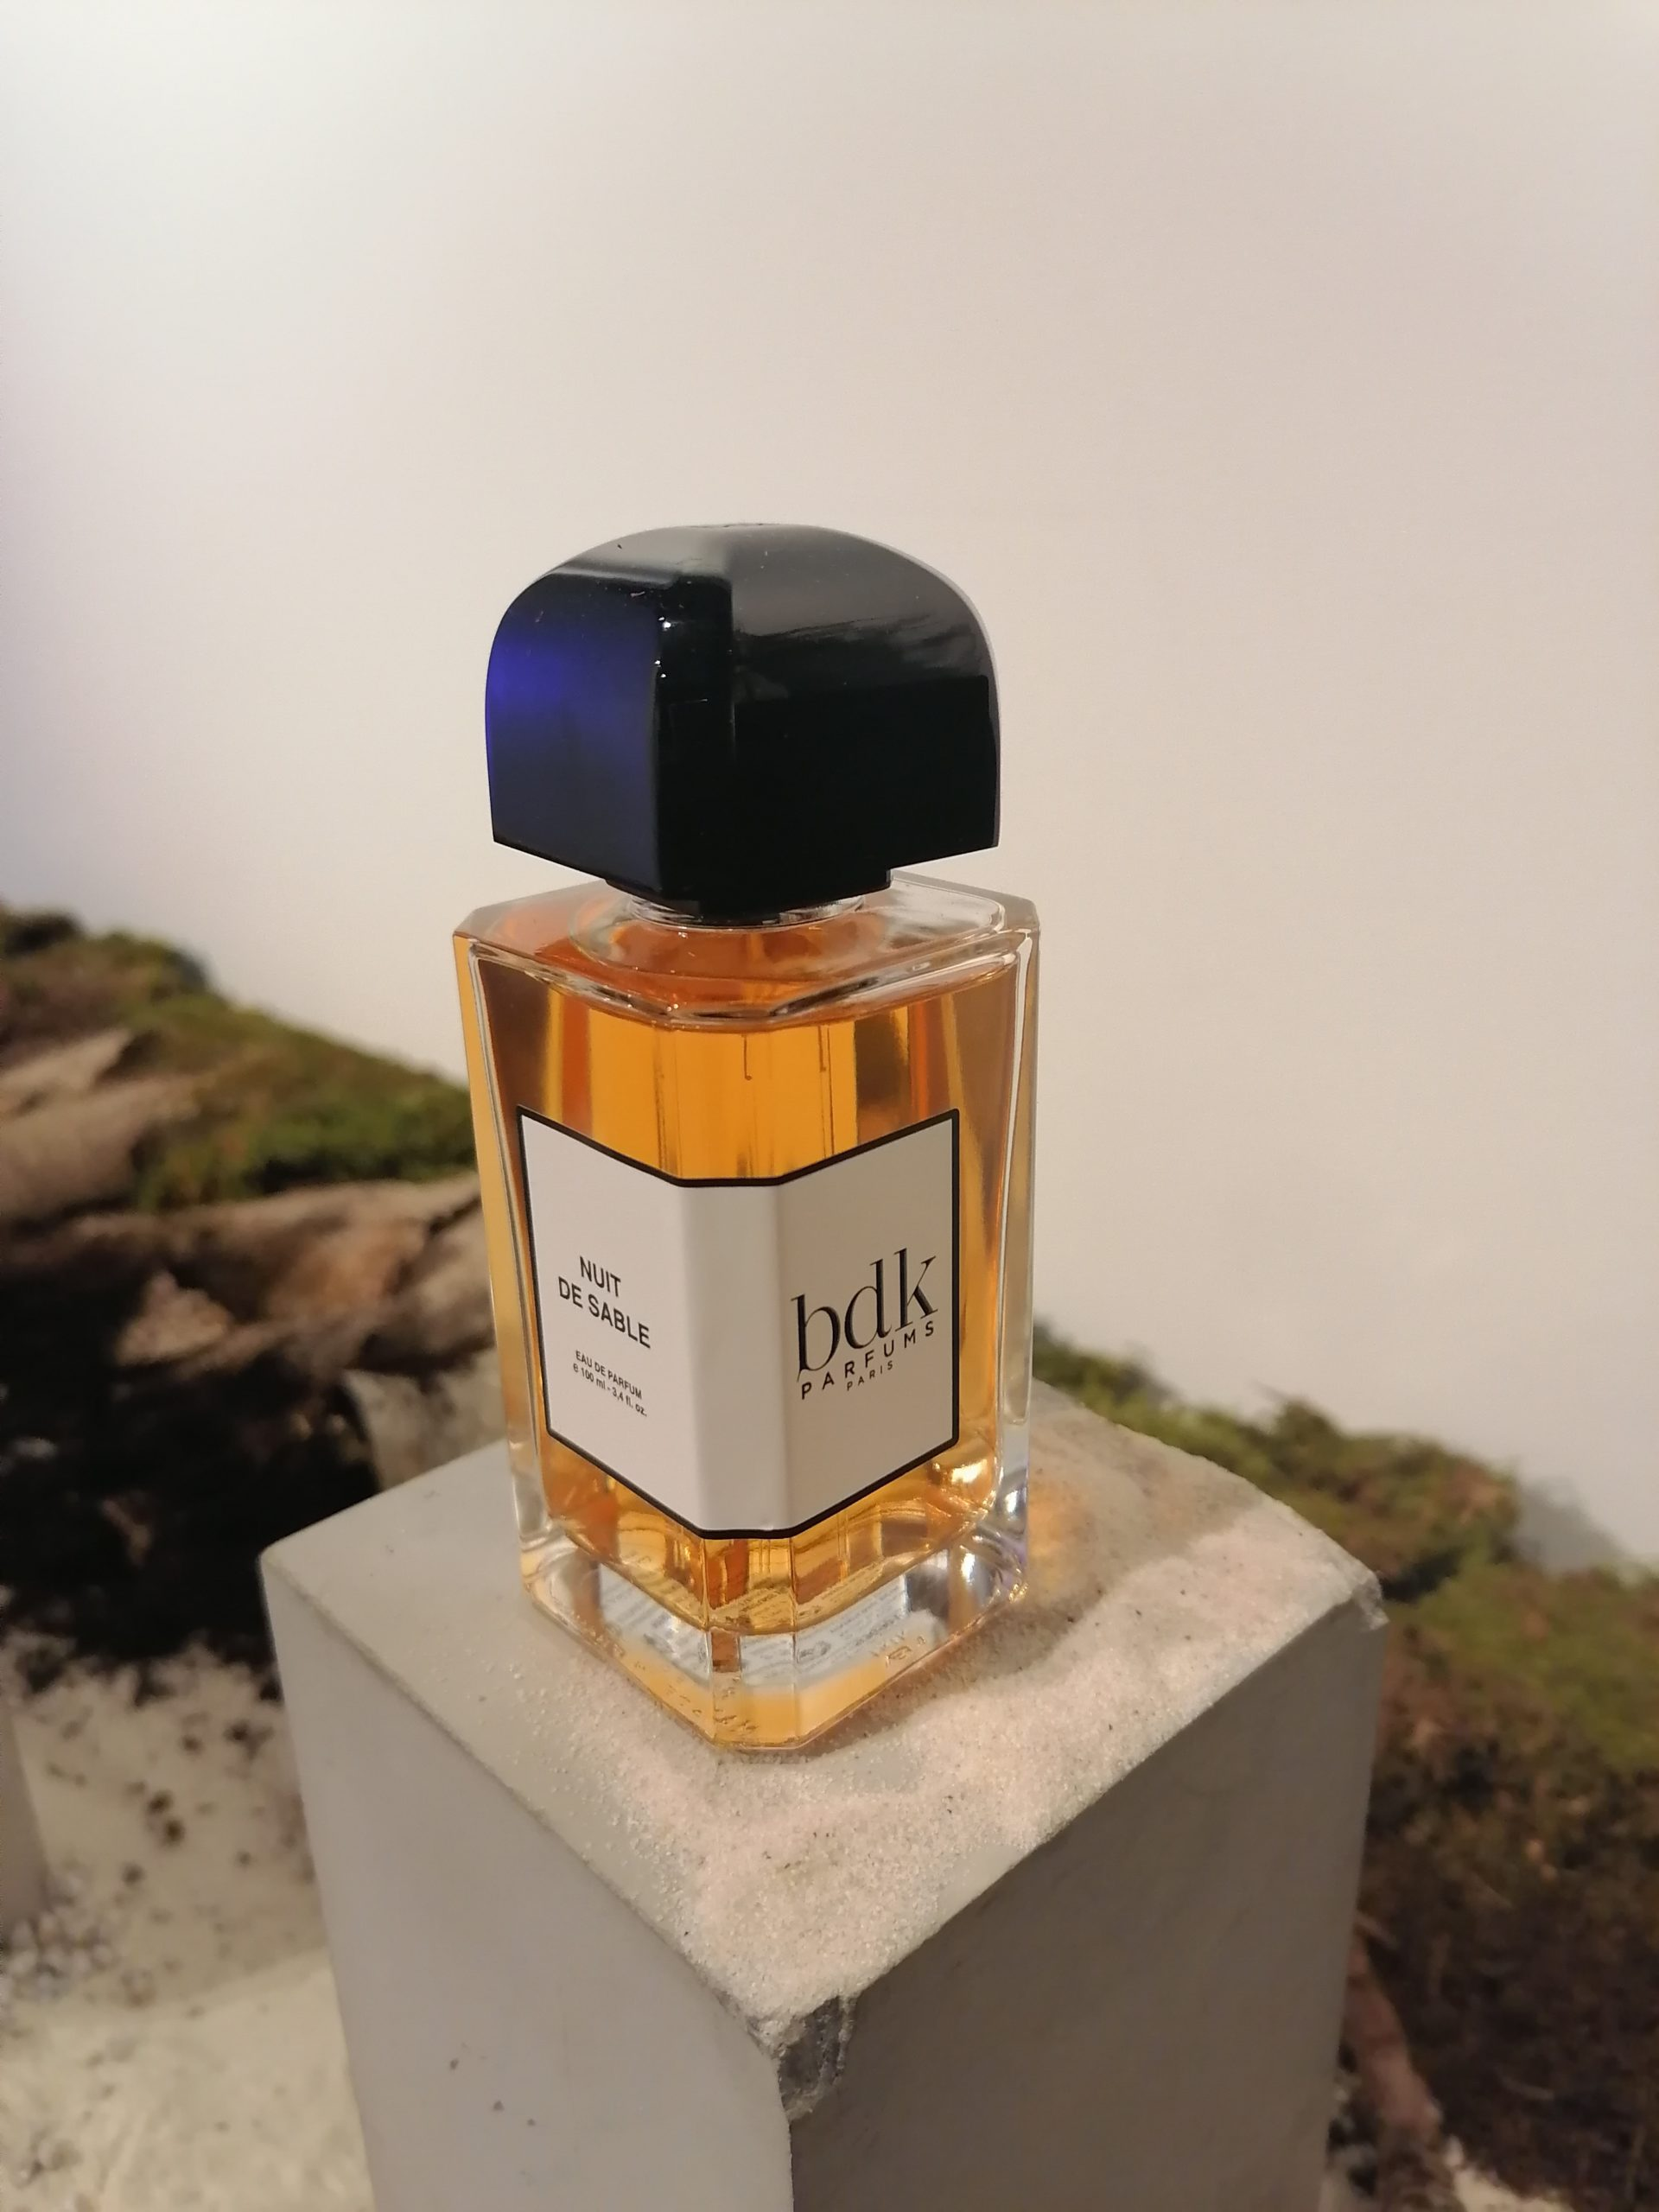 bdk parfums nuit de sable